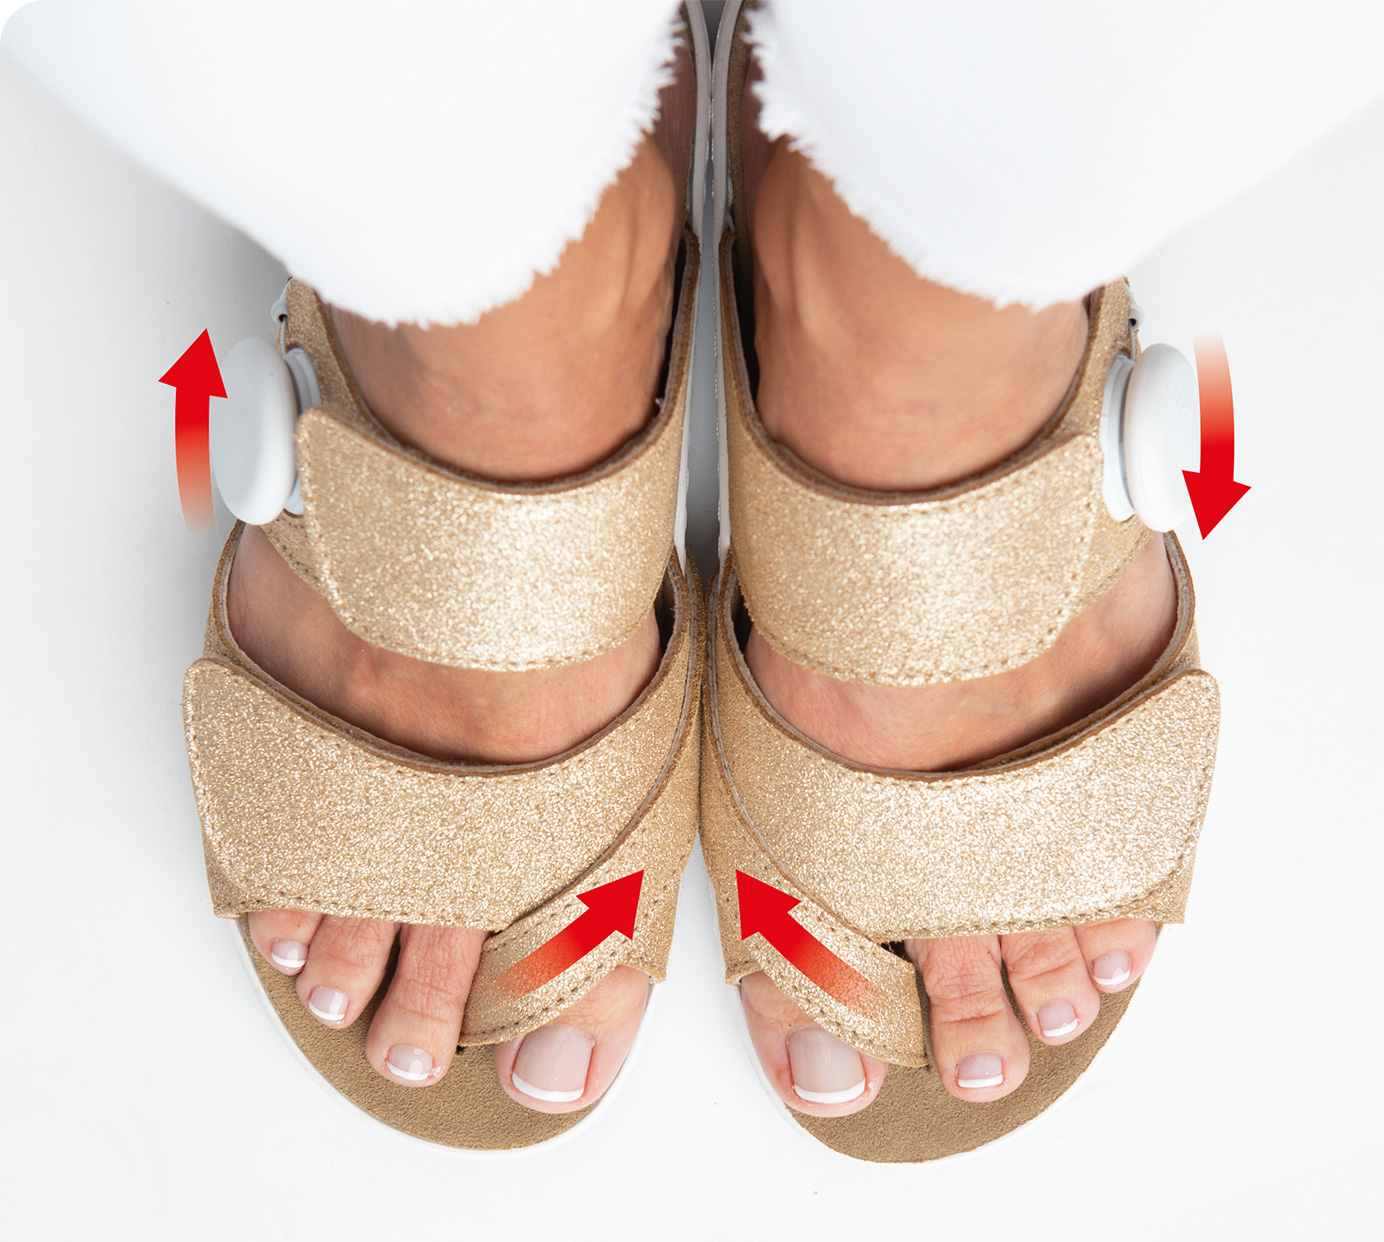 Hallufix Bunion Treatment Sandals